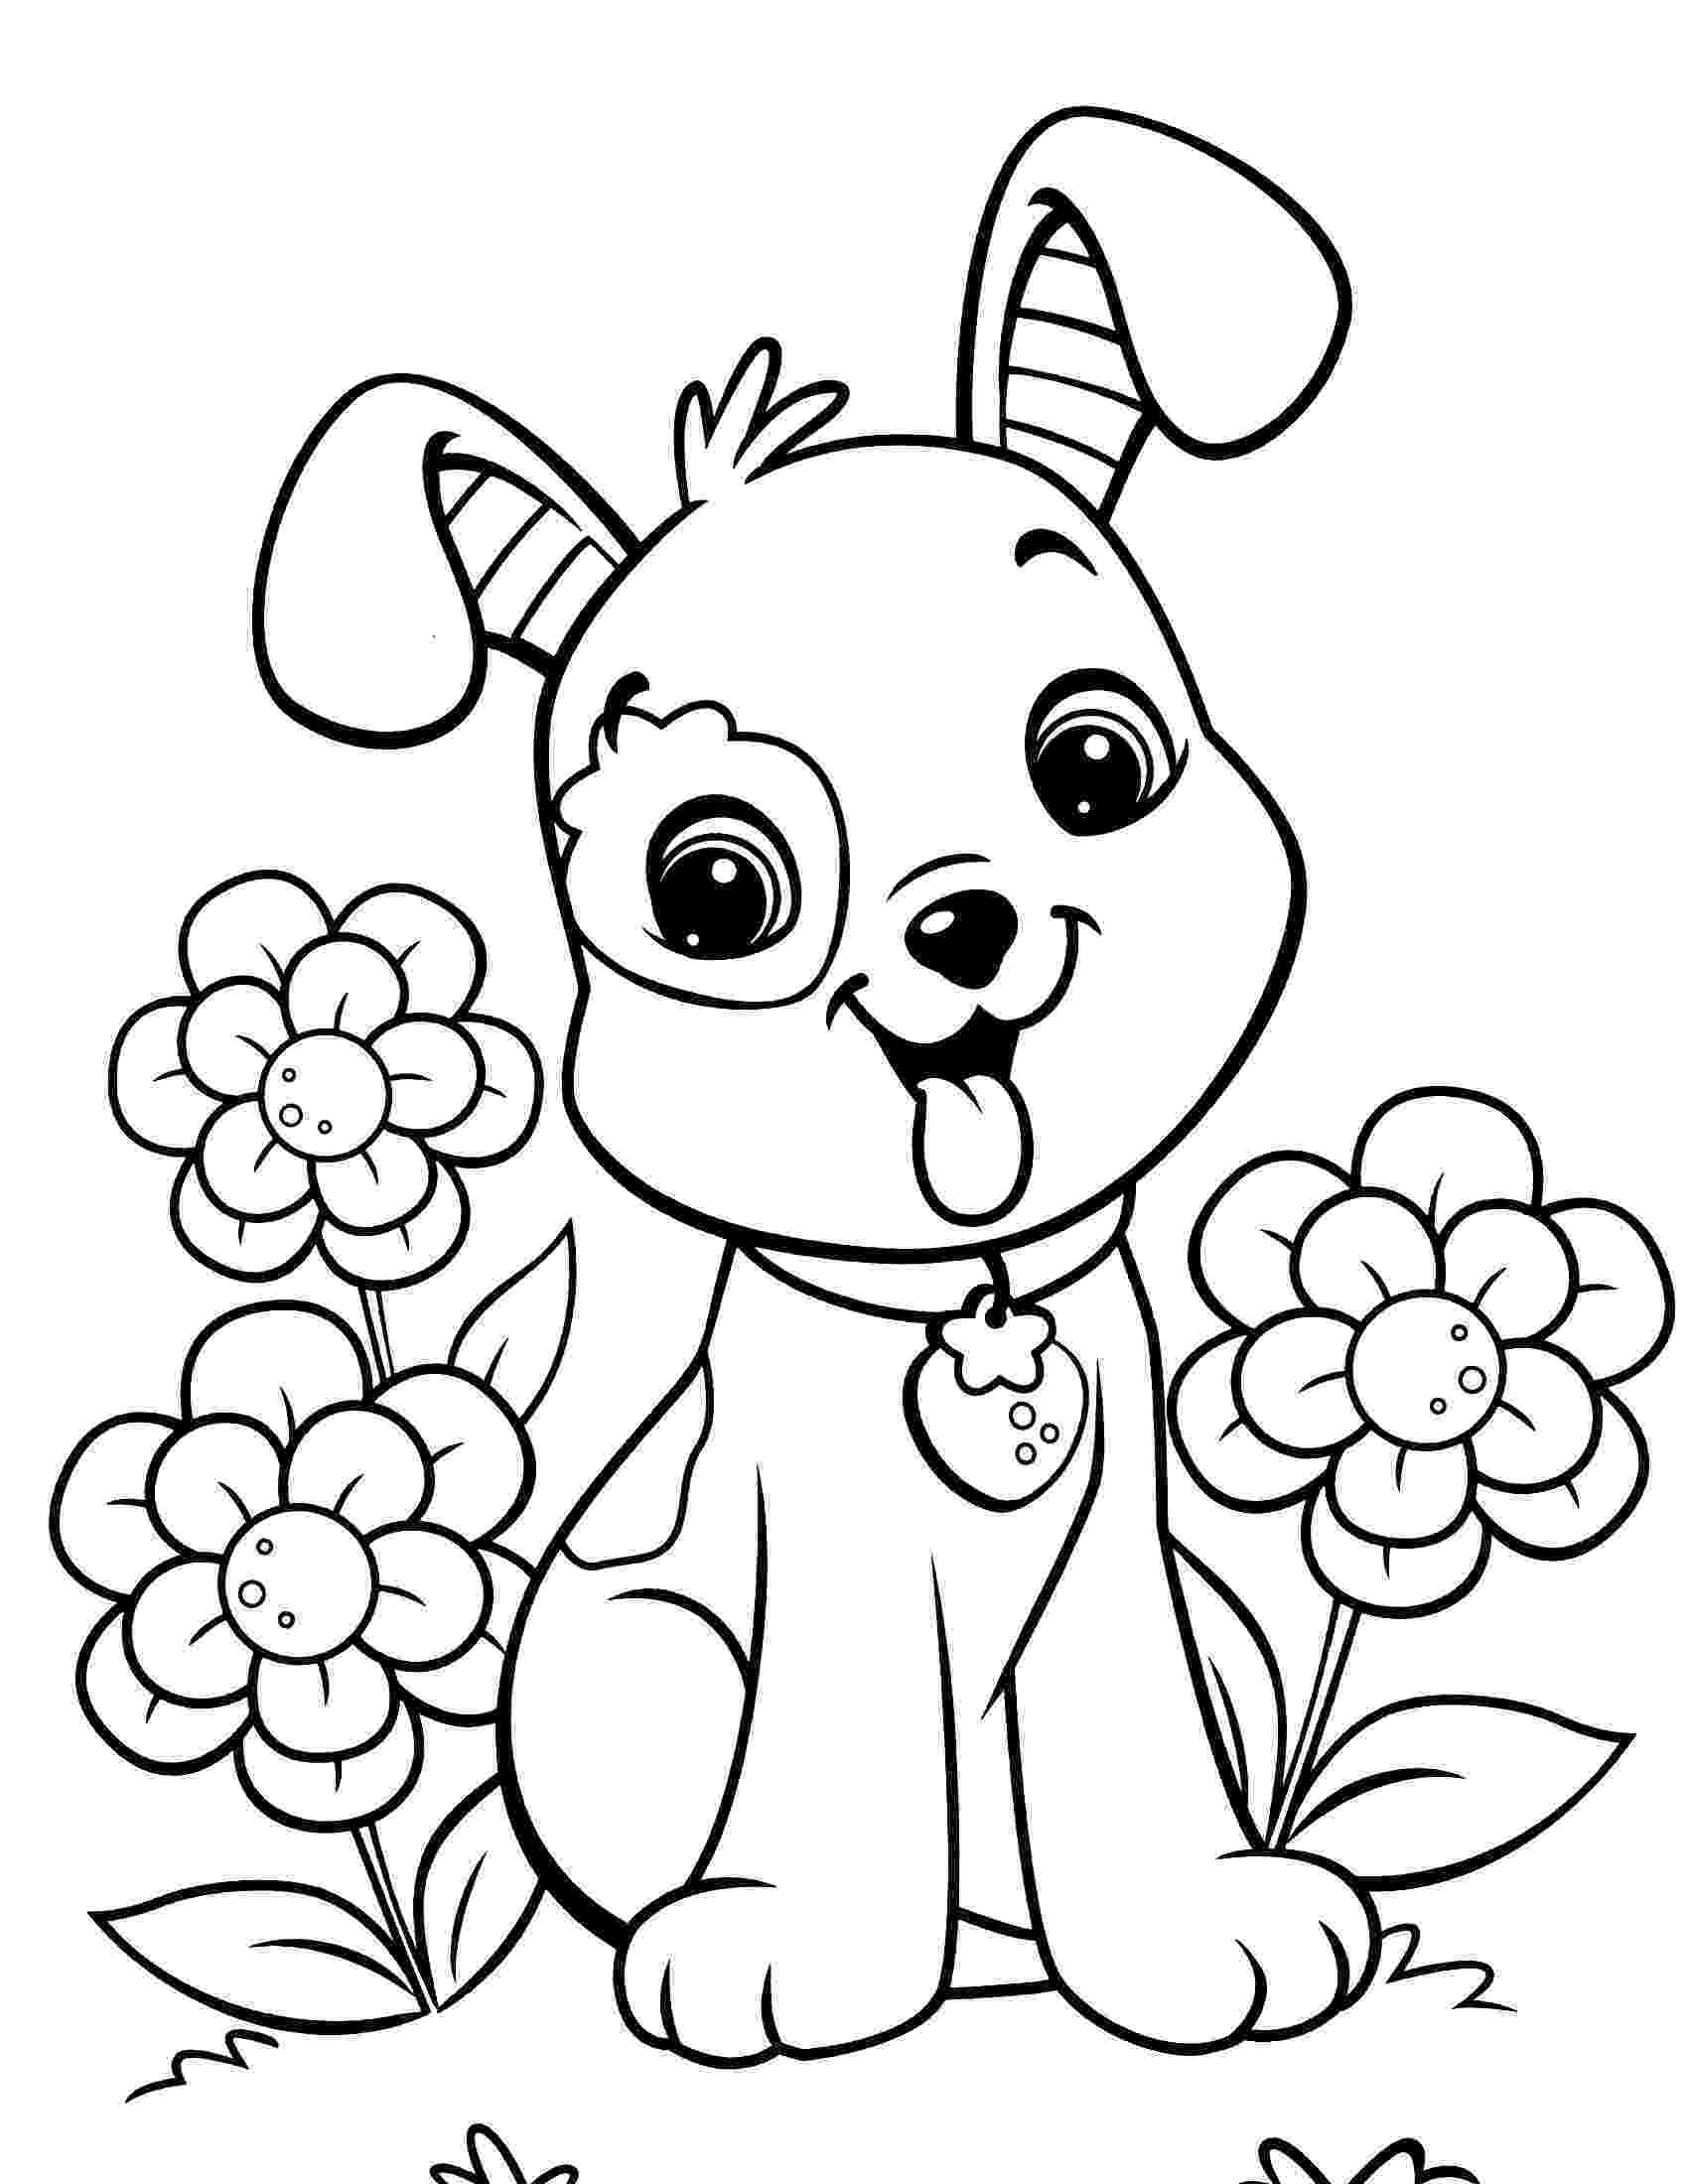 colouring pages puppies puppy coloring pages best coloring pages for kids pages colouring puppies